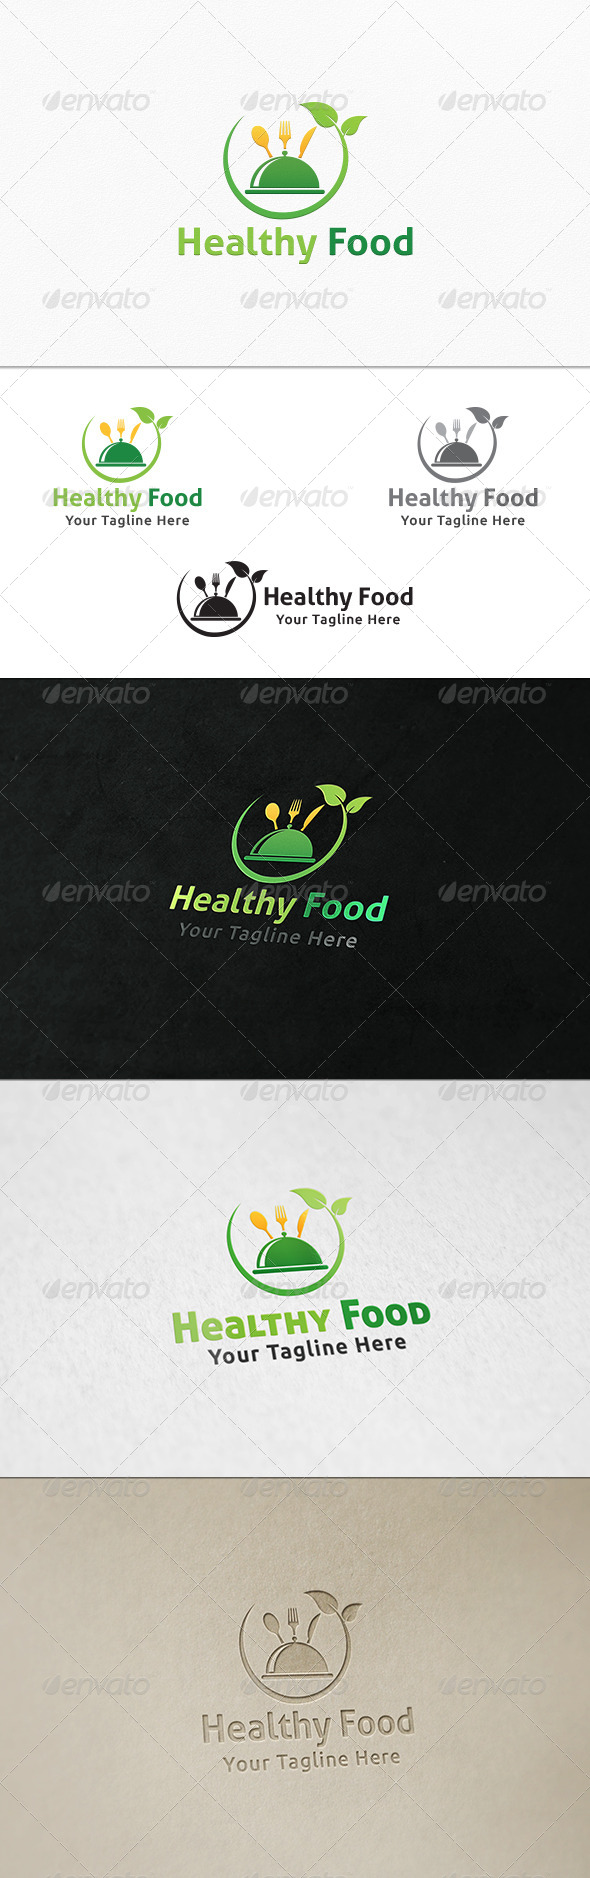 GraphicRiver Healthy Food Logo Template 7789268